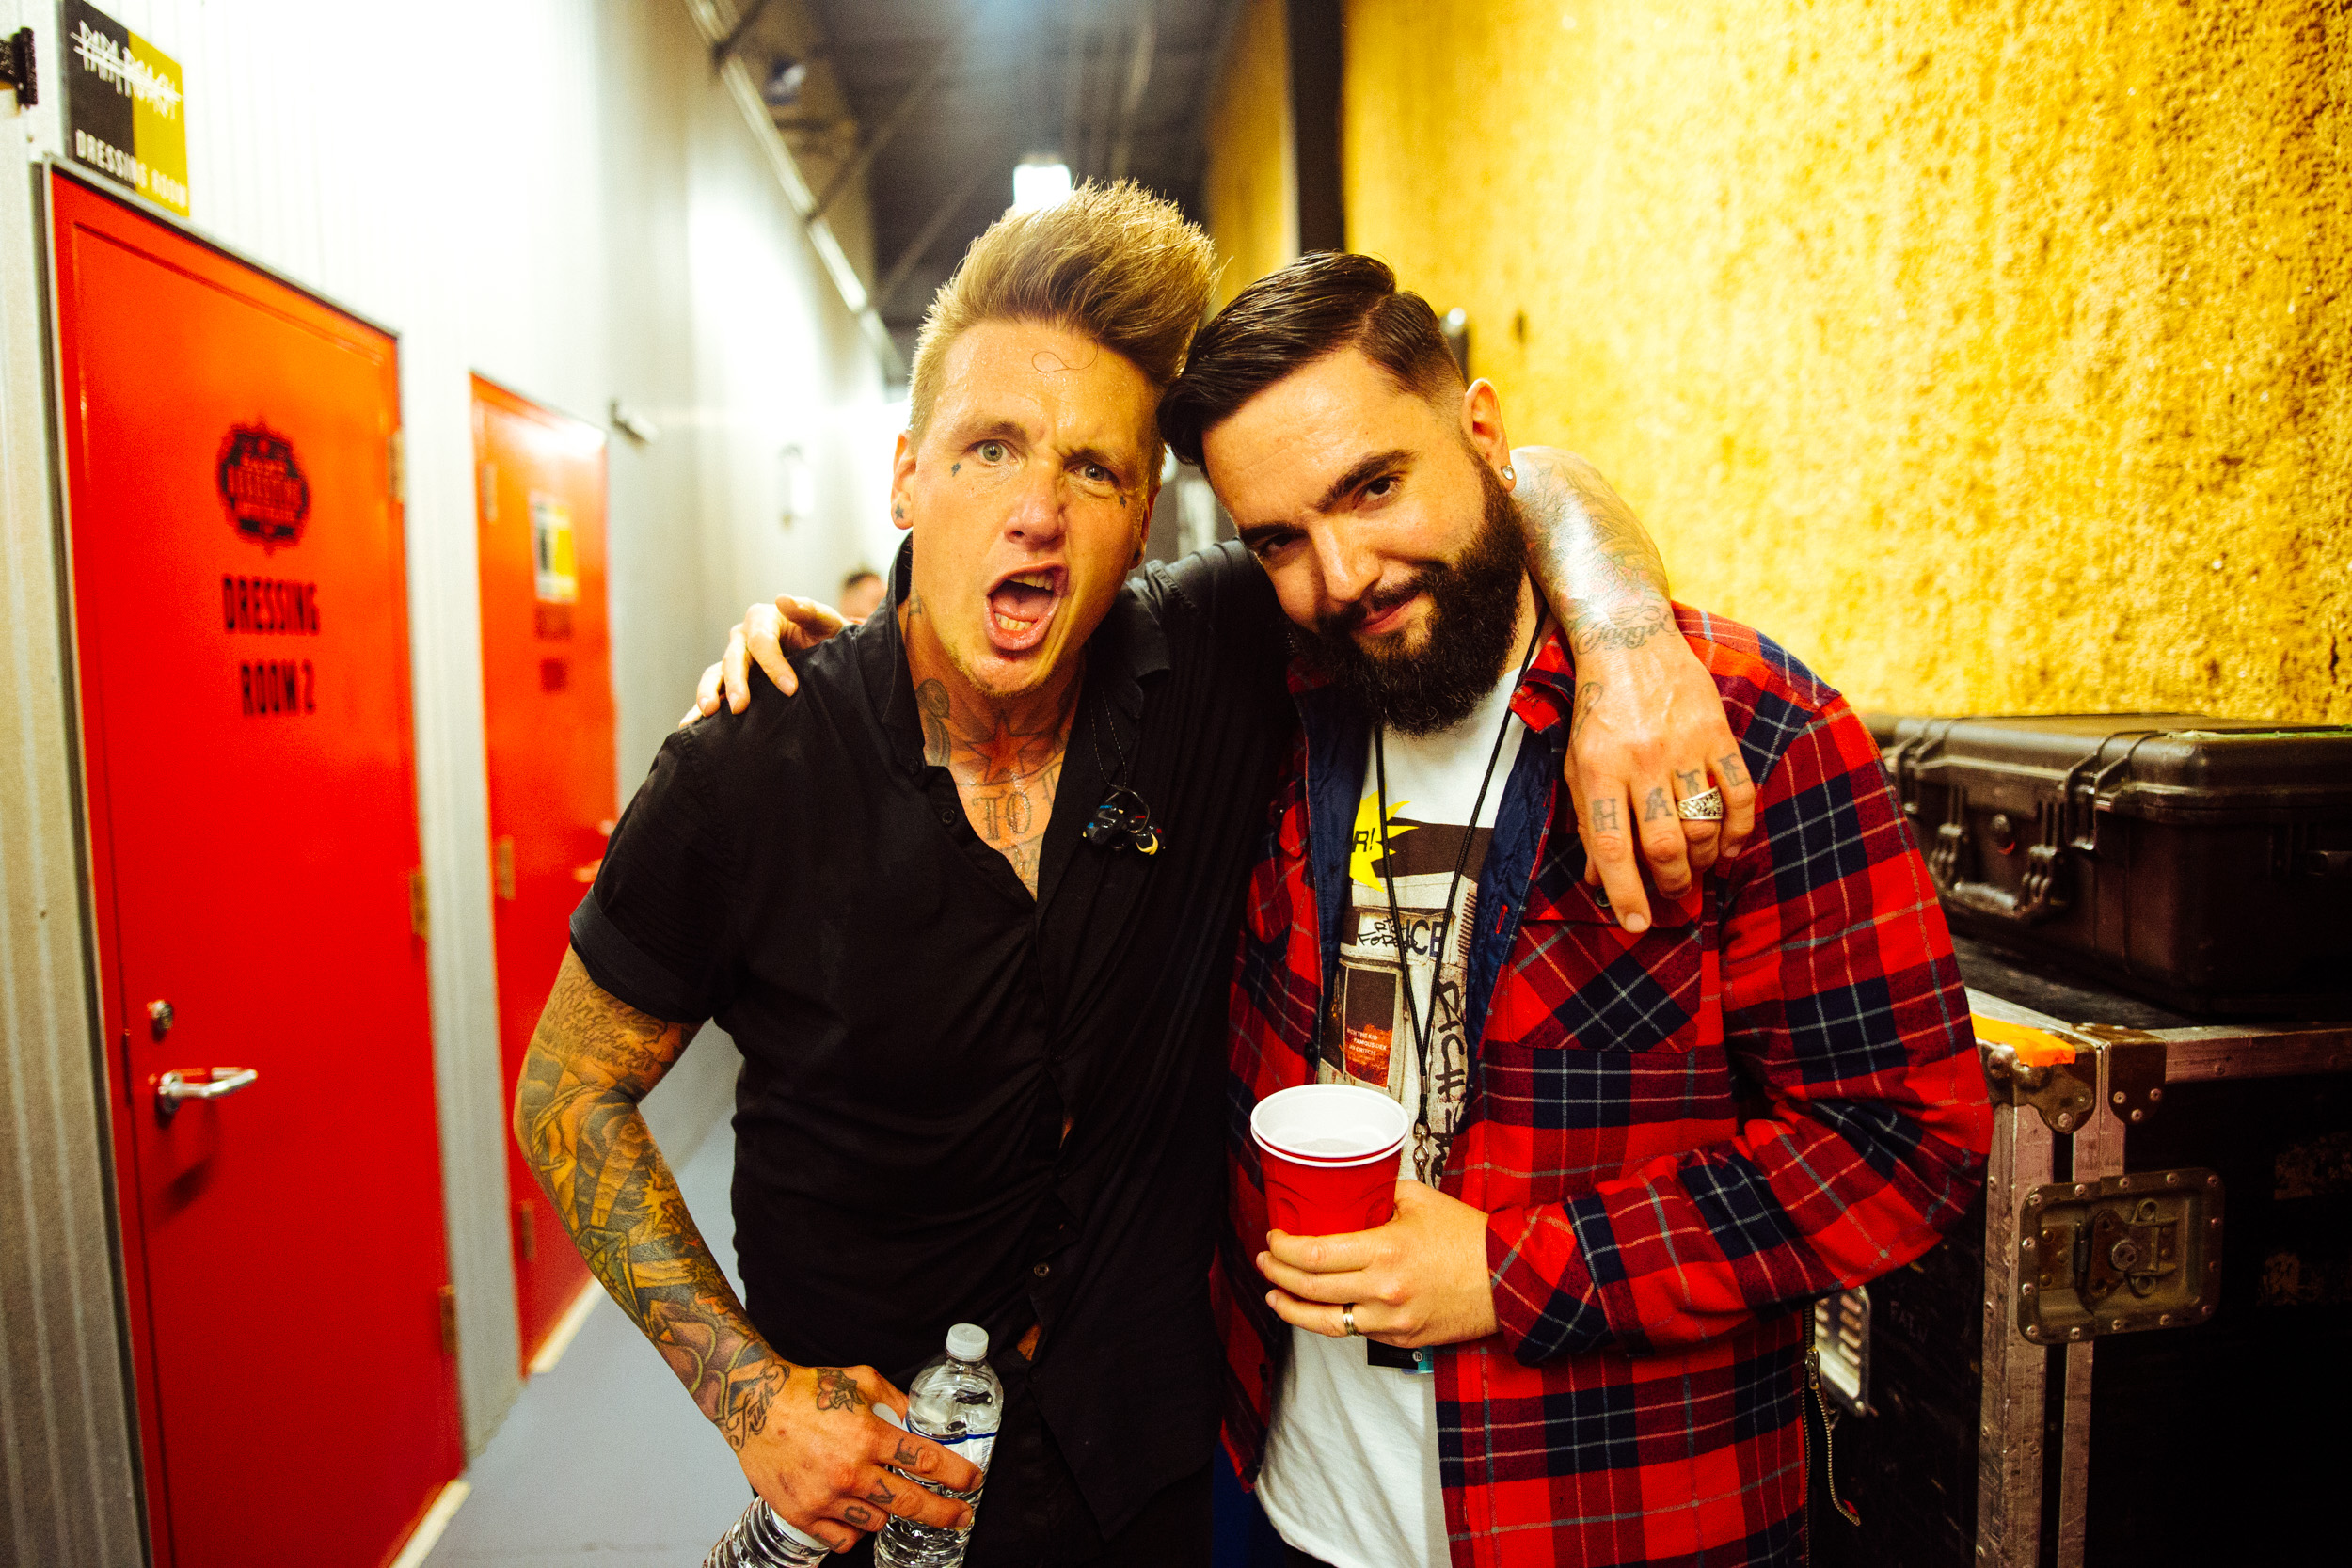 Jacoby of Papa Roach and Jeremy of A Day To Remember